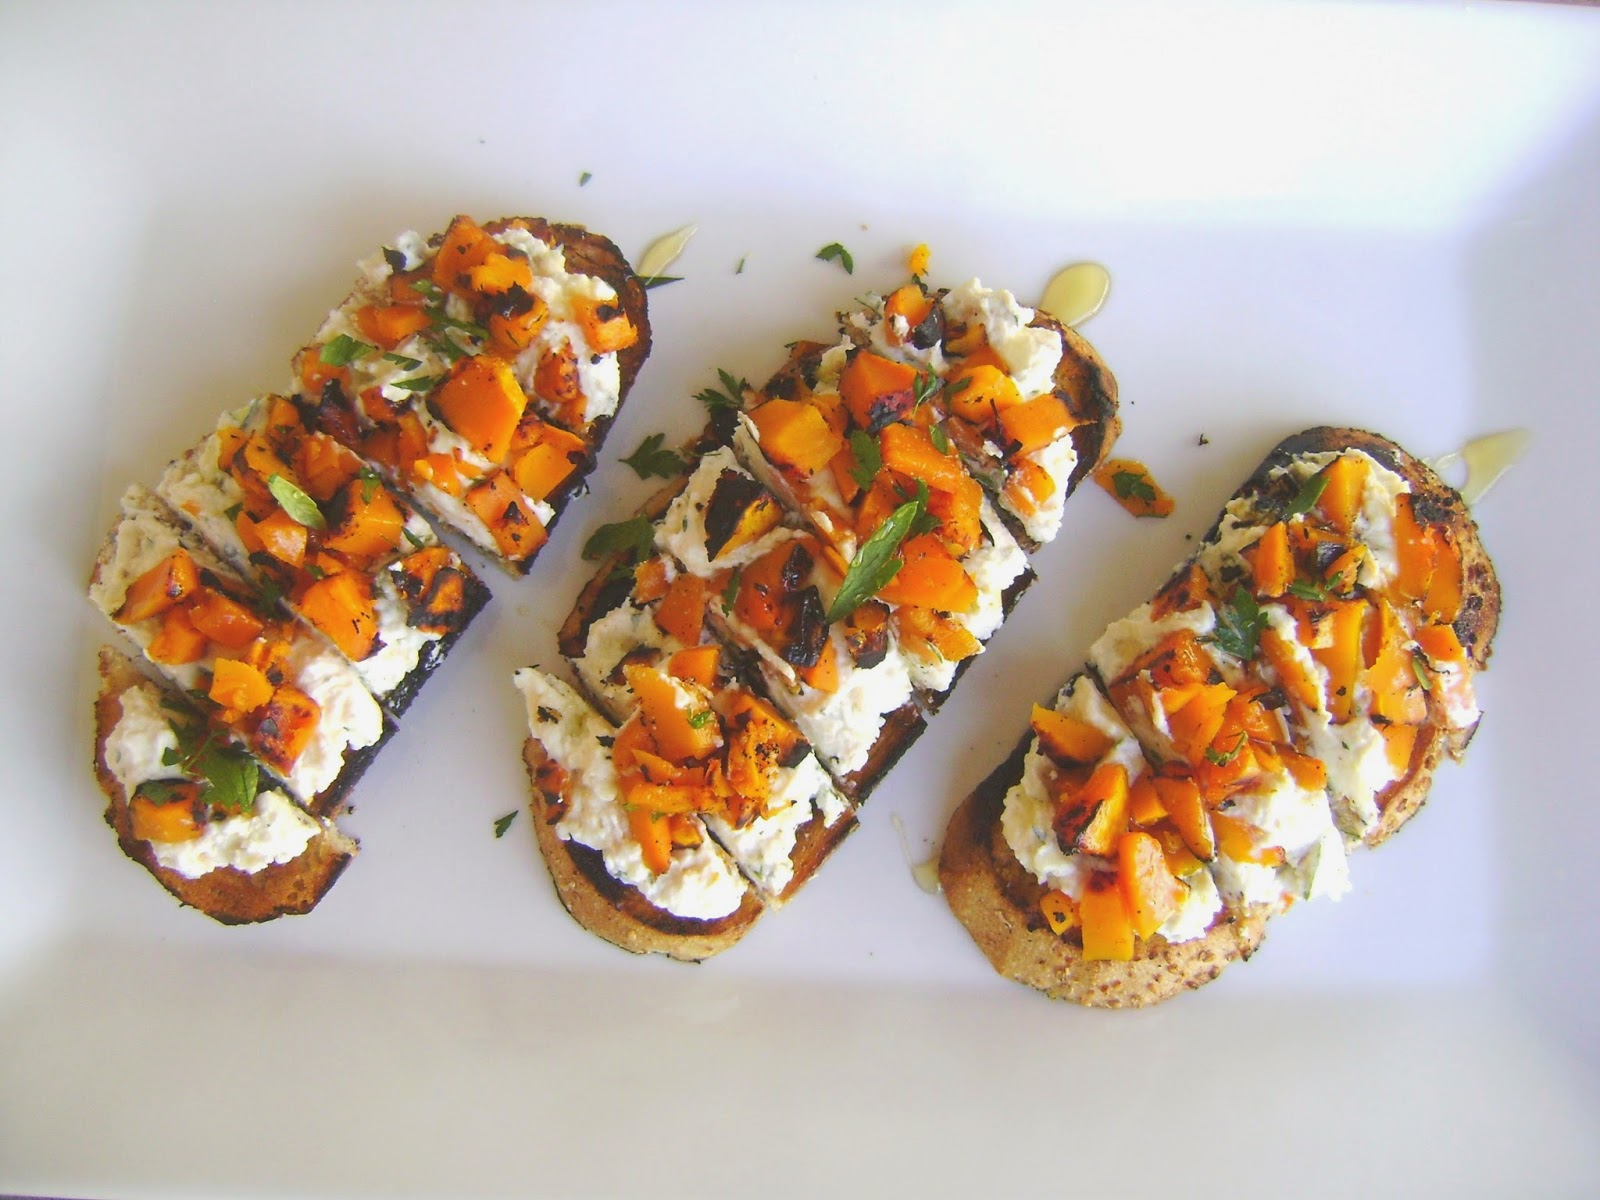 mysavoryspoon: Grilled Butternut Squash Bruschetta